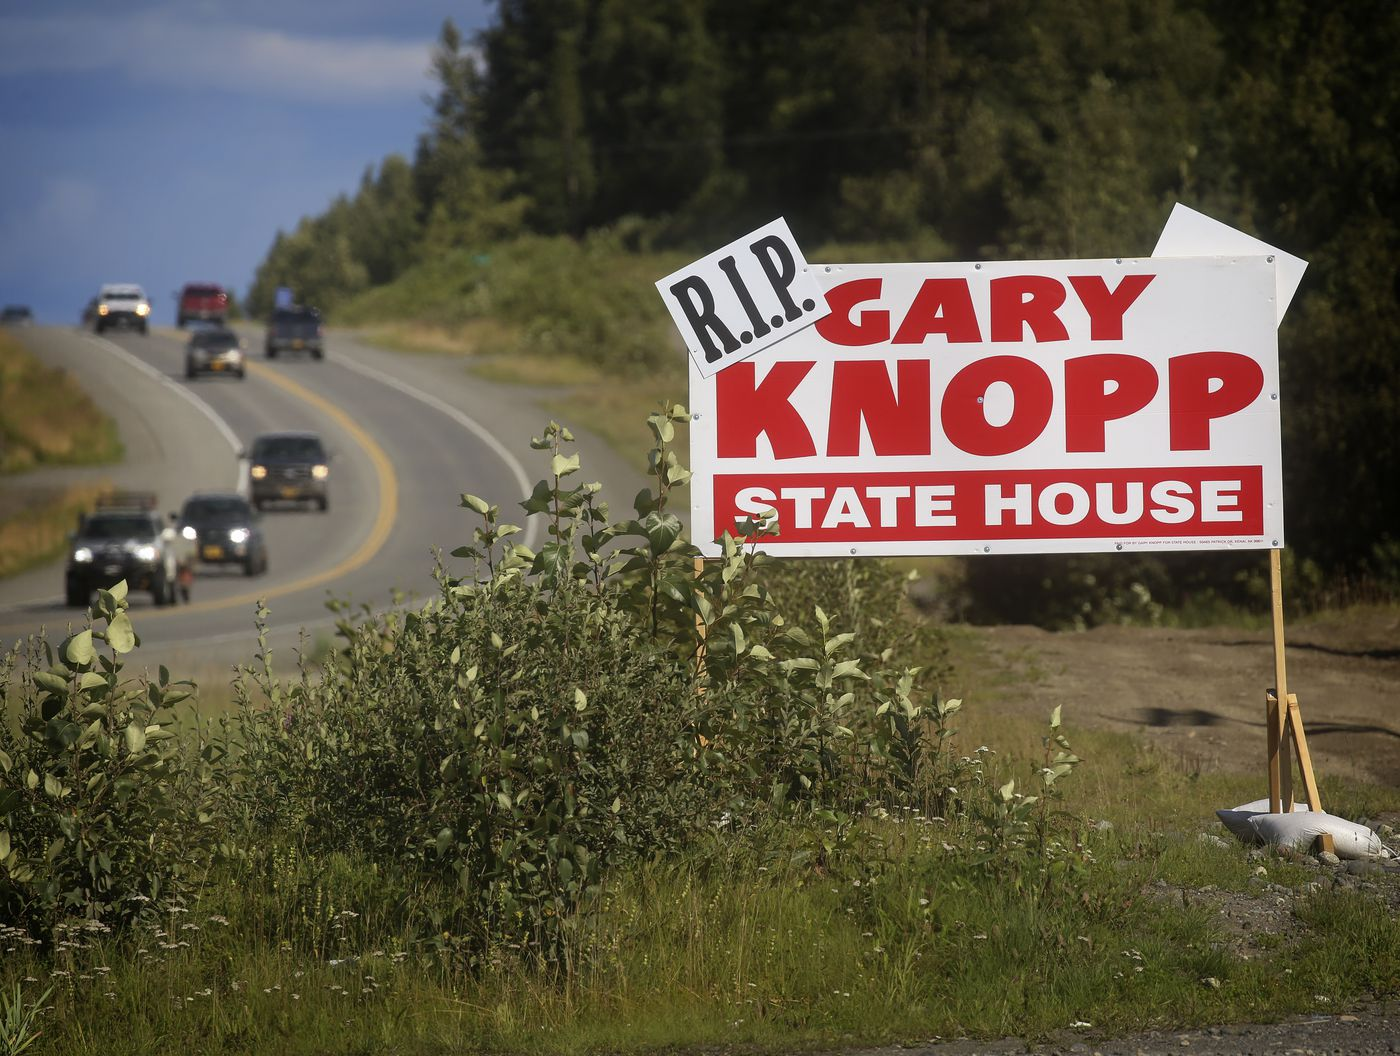 A 'Rest in Peace ' sign was added to a Gary Knopp campaign sign along the Sterling Highway, photographed on Aug. 9, 2020. Knopp, a state representative, was killed in a midair plane crash above Soldotna on July 31. He was a candidate in this year's Republican primary for House District 30. (Emily Mesner / ADN)